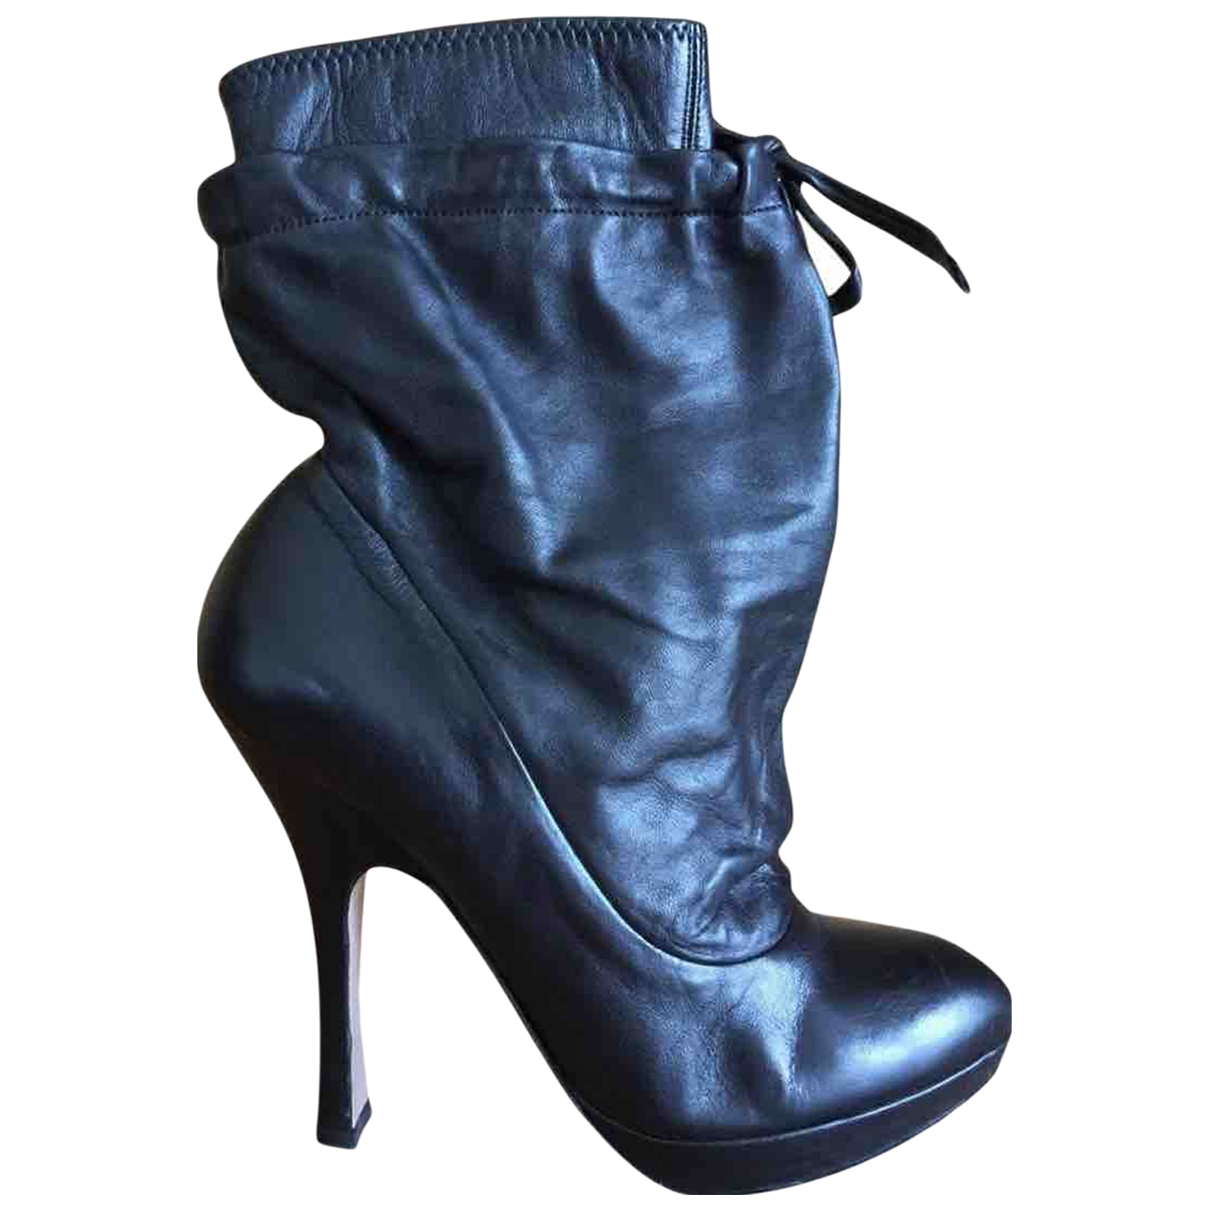 Prada \N Black Leather Ankle boots for Women 36.5 EU